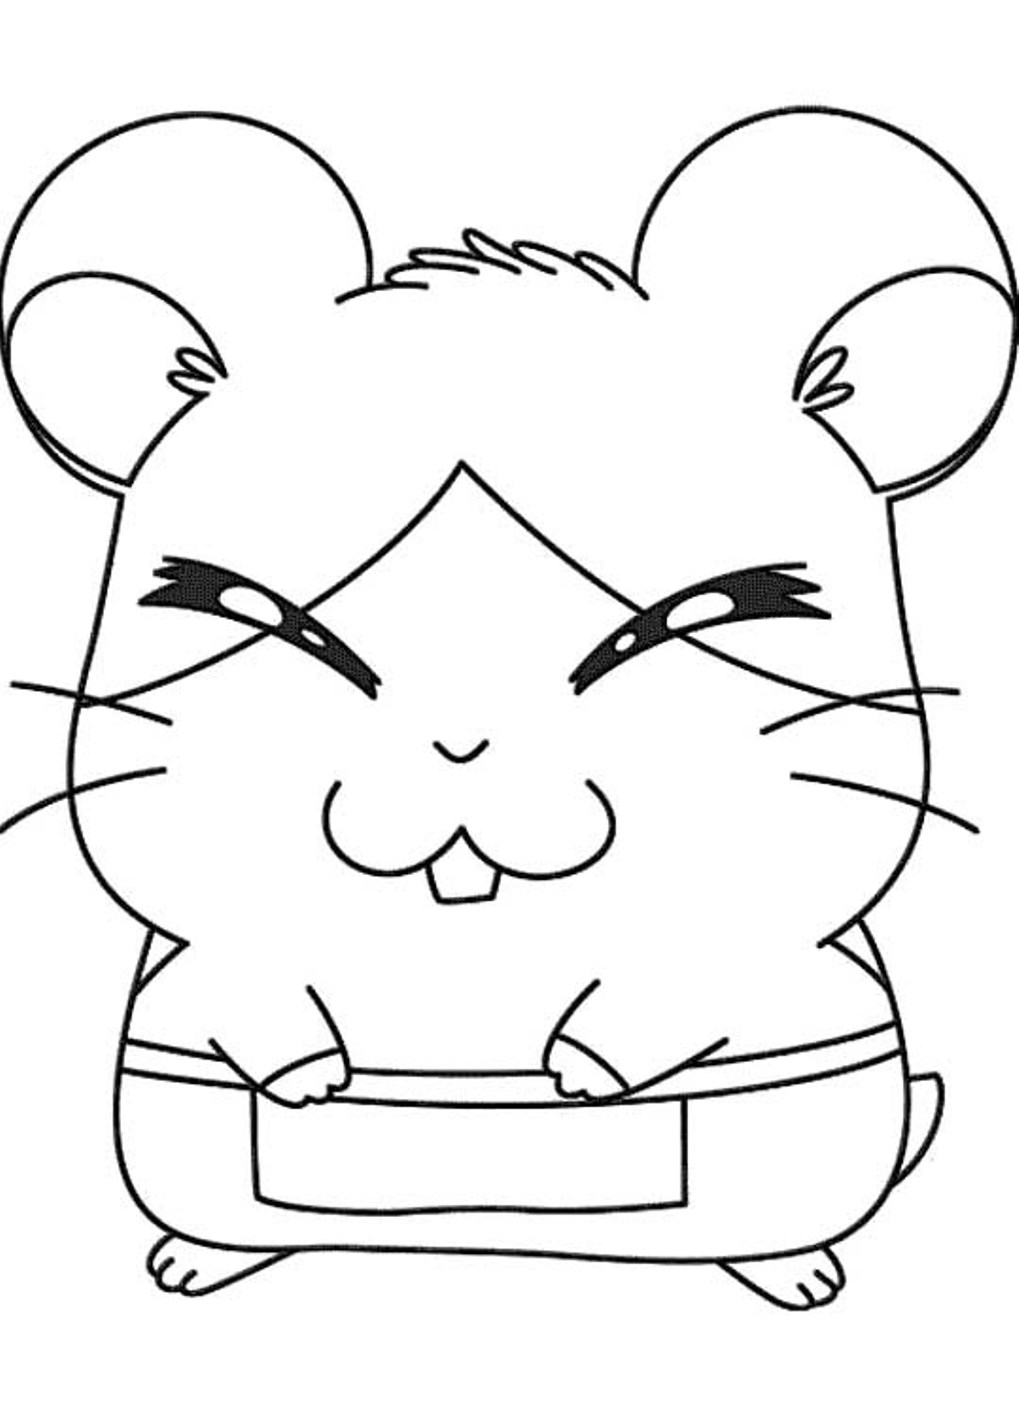 Hamtaro Coloring Pages To Download And Print For